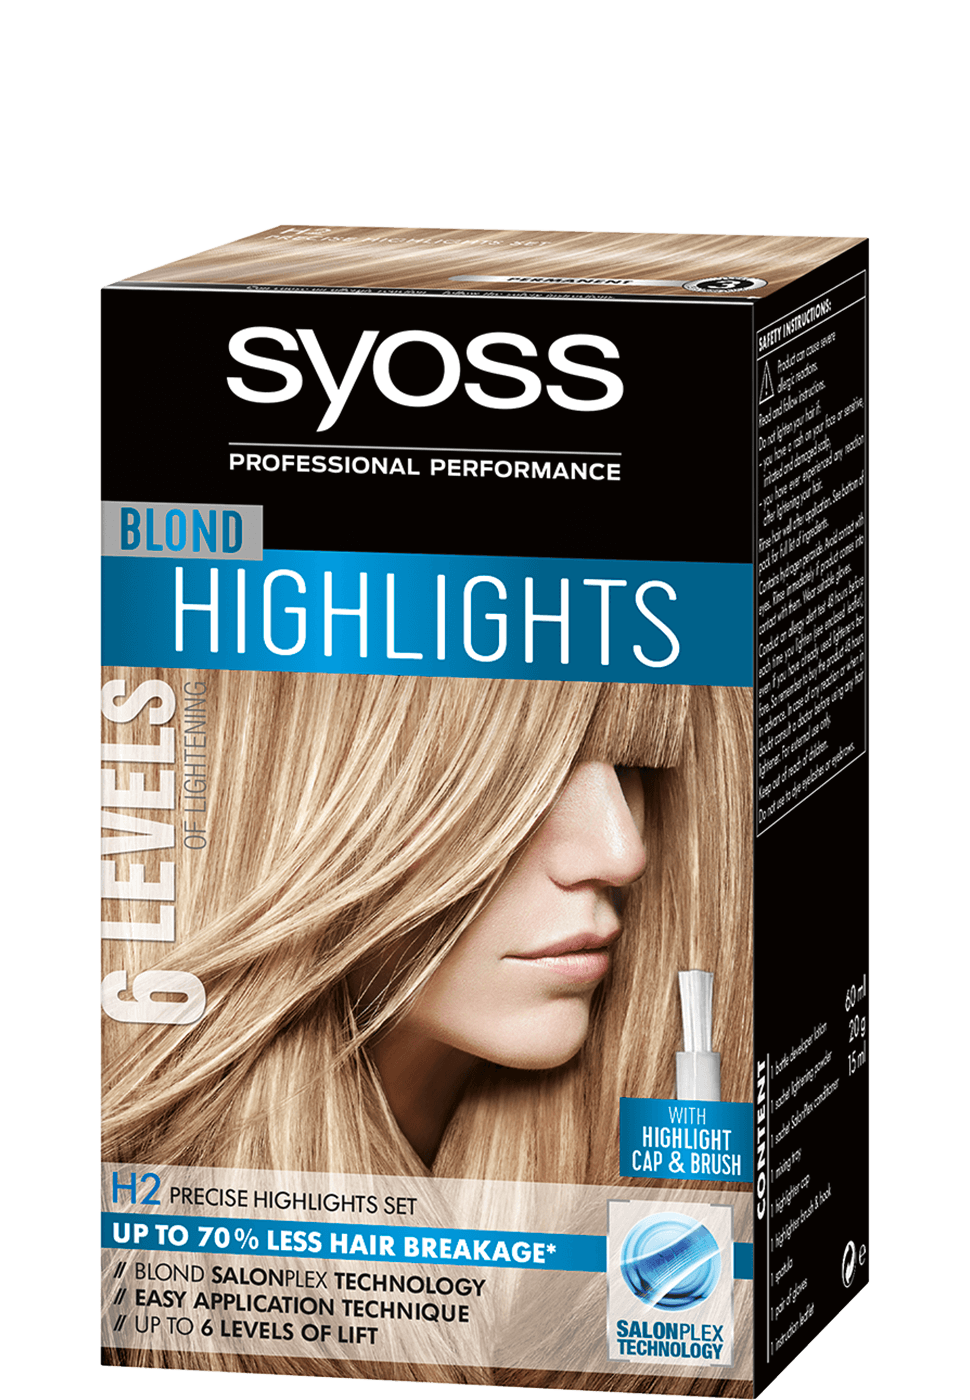 syoss_com_color_blond_highlights_h2_precise_highlights_set_970x1400